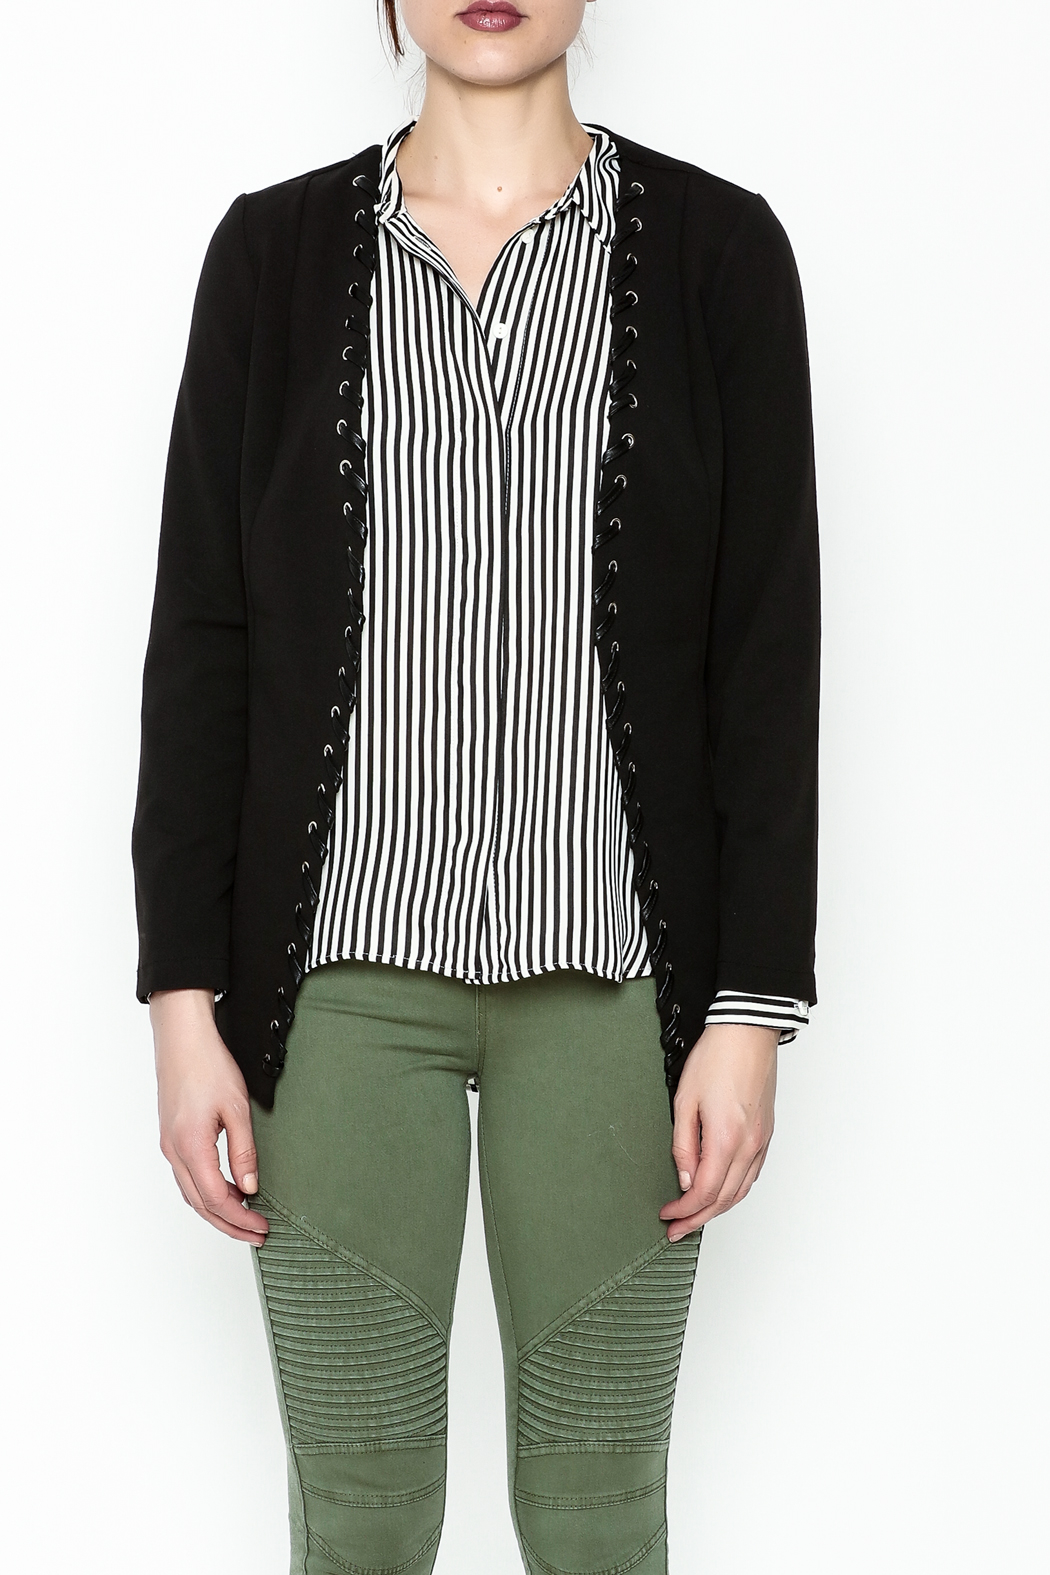 MICHEL Lace Up Blazer - Front Full Image